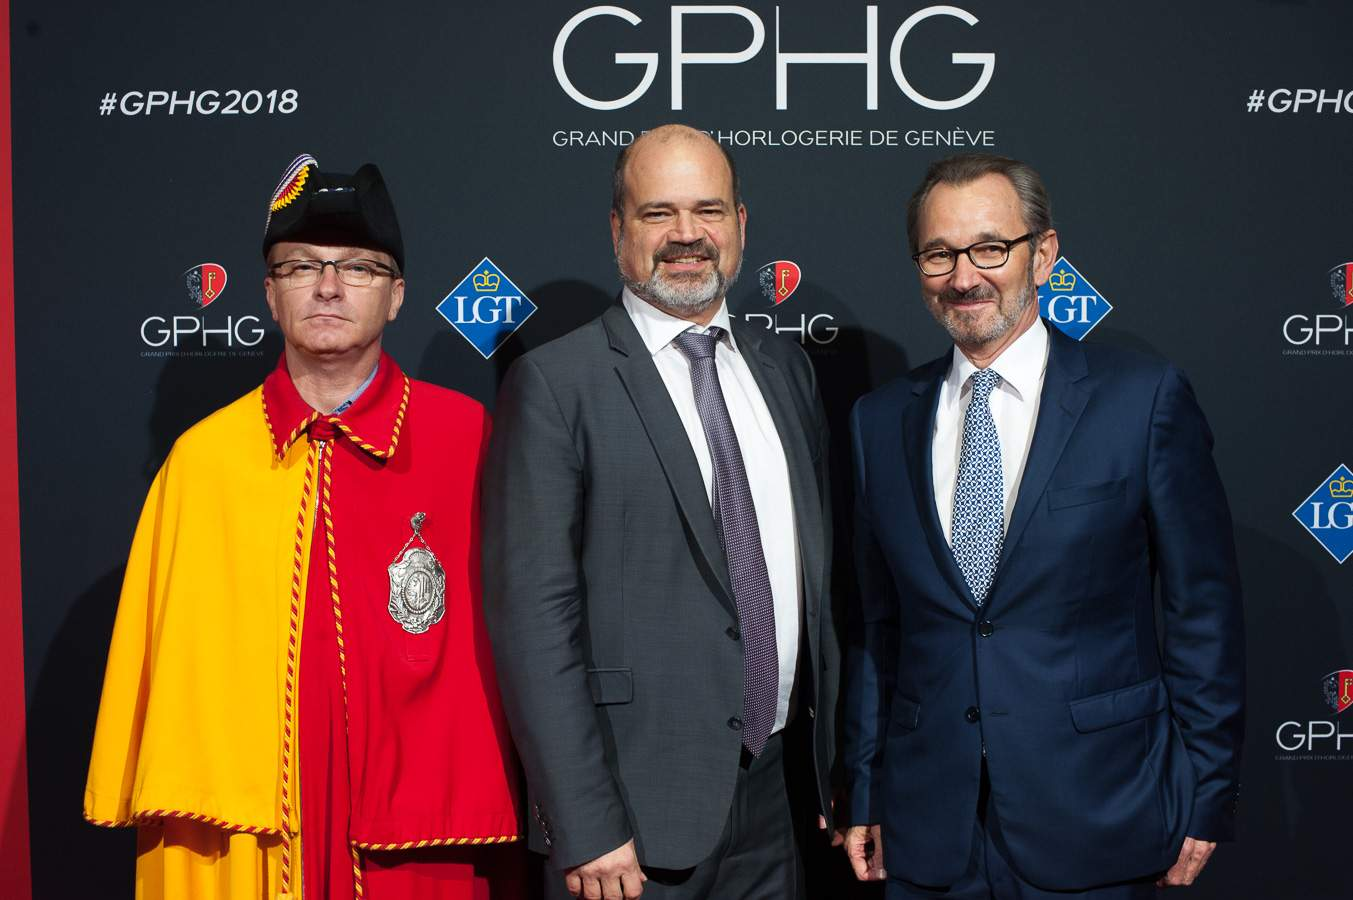 Sami Kanaan, Mayor of the City of Geneva and Raymond Loretan, President of the GPHG Foundation